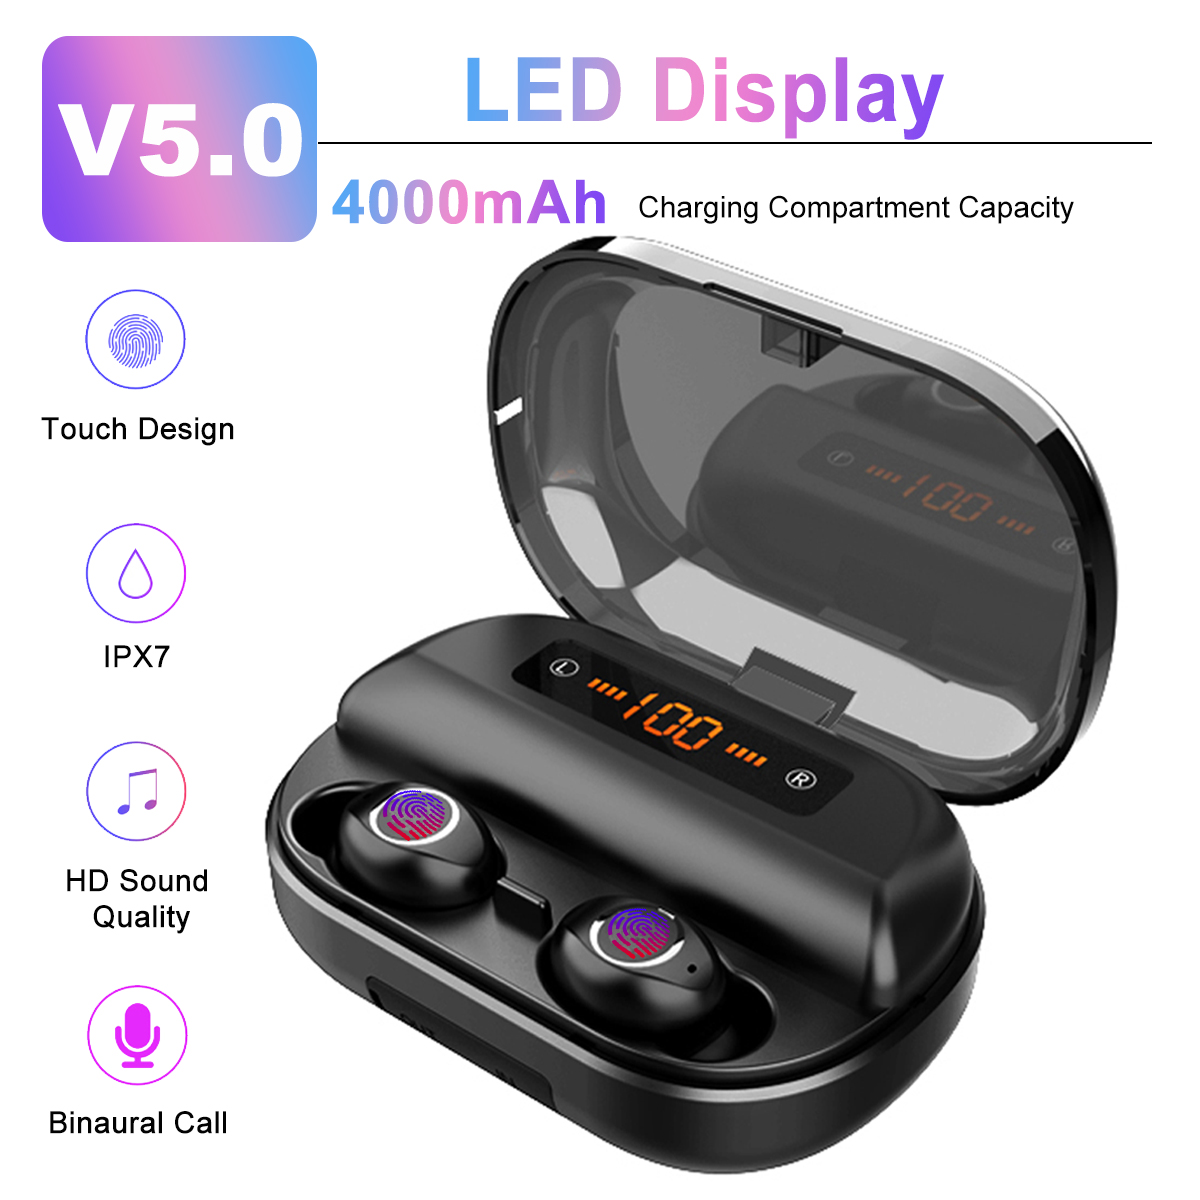 TWS bluetooth 5.0 Earphone LED Display Stereo Wireless Earbuds <font><b>4000mAh</b></font> <font><b>Power</b></font> <font><b>Bank</b></font> IPX7 Waterproof Touchs Sport Headset image